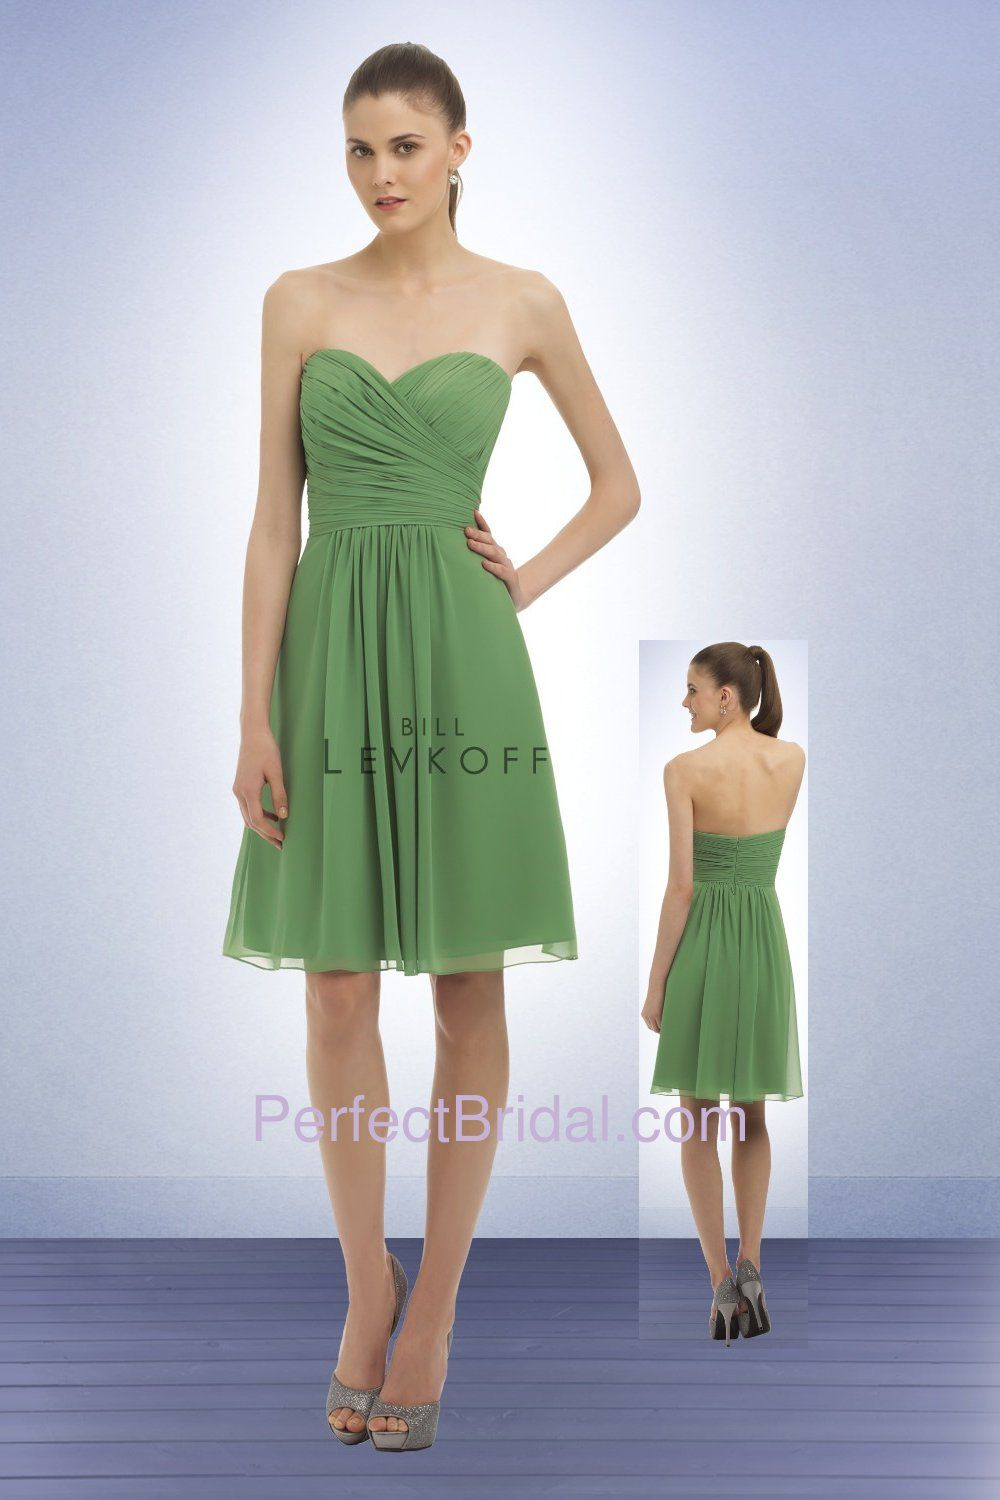 Green bridesmaid dress wedding ideas for my girls pinterest green bridesmaid dress ombrellifo Image collections